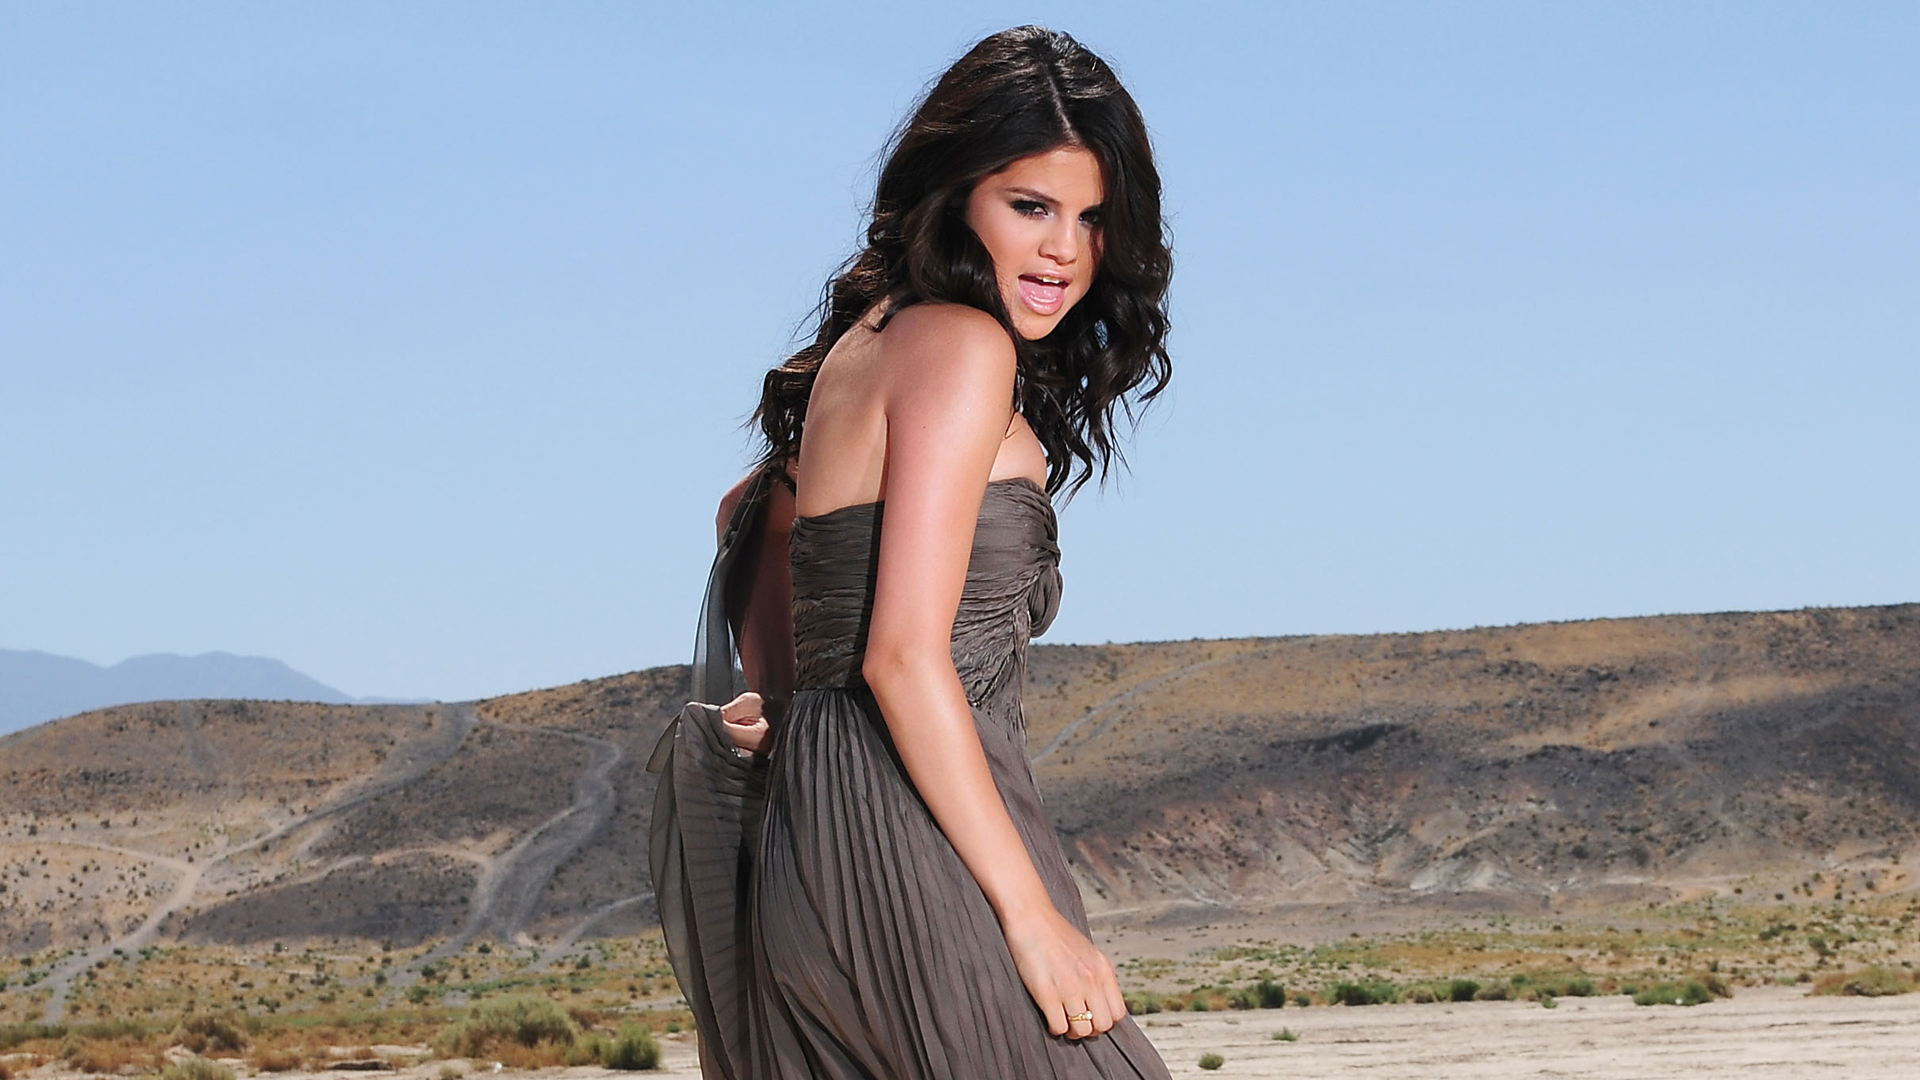 download selena gomez year without rain - hd wallpapers images